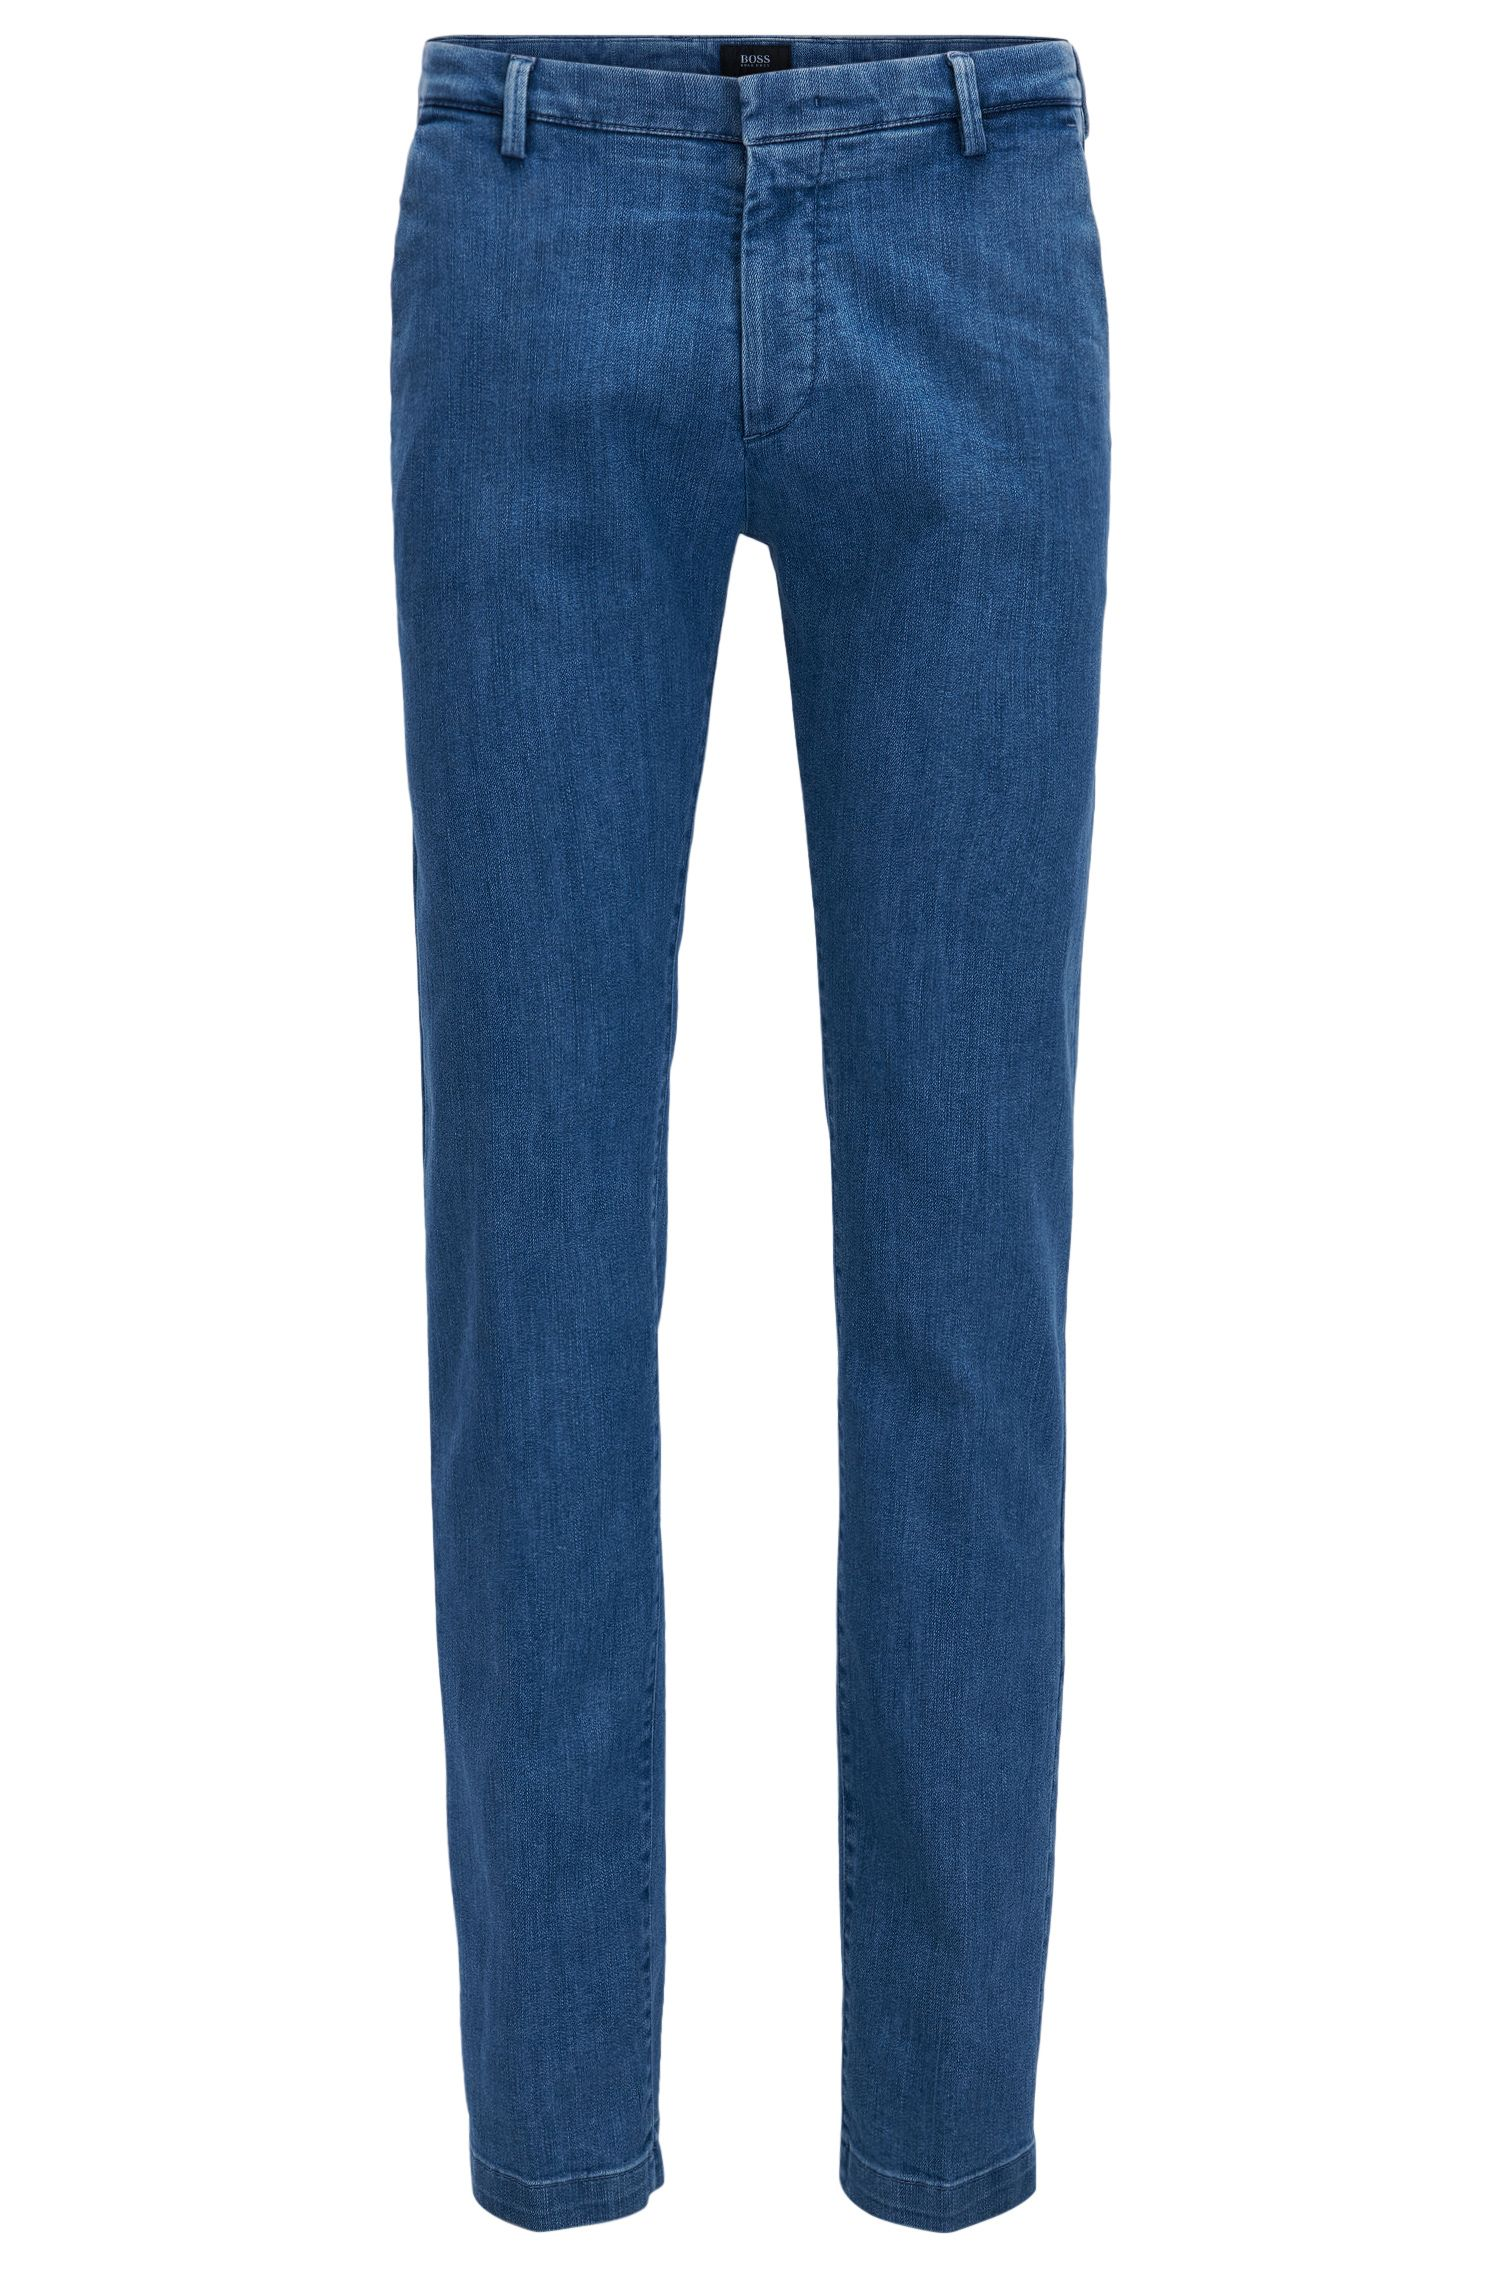 Italian Cotton Blend Denim Pant, Slim Fit | Rice W